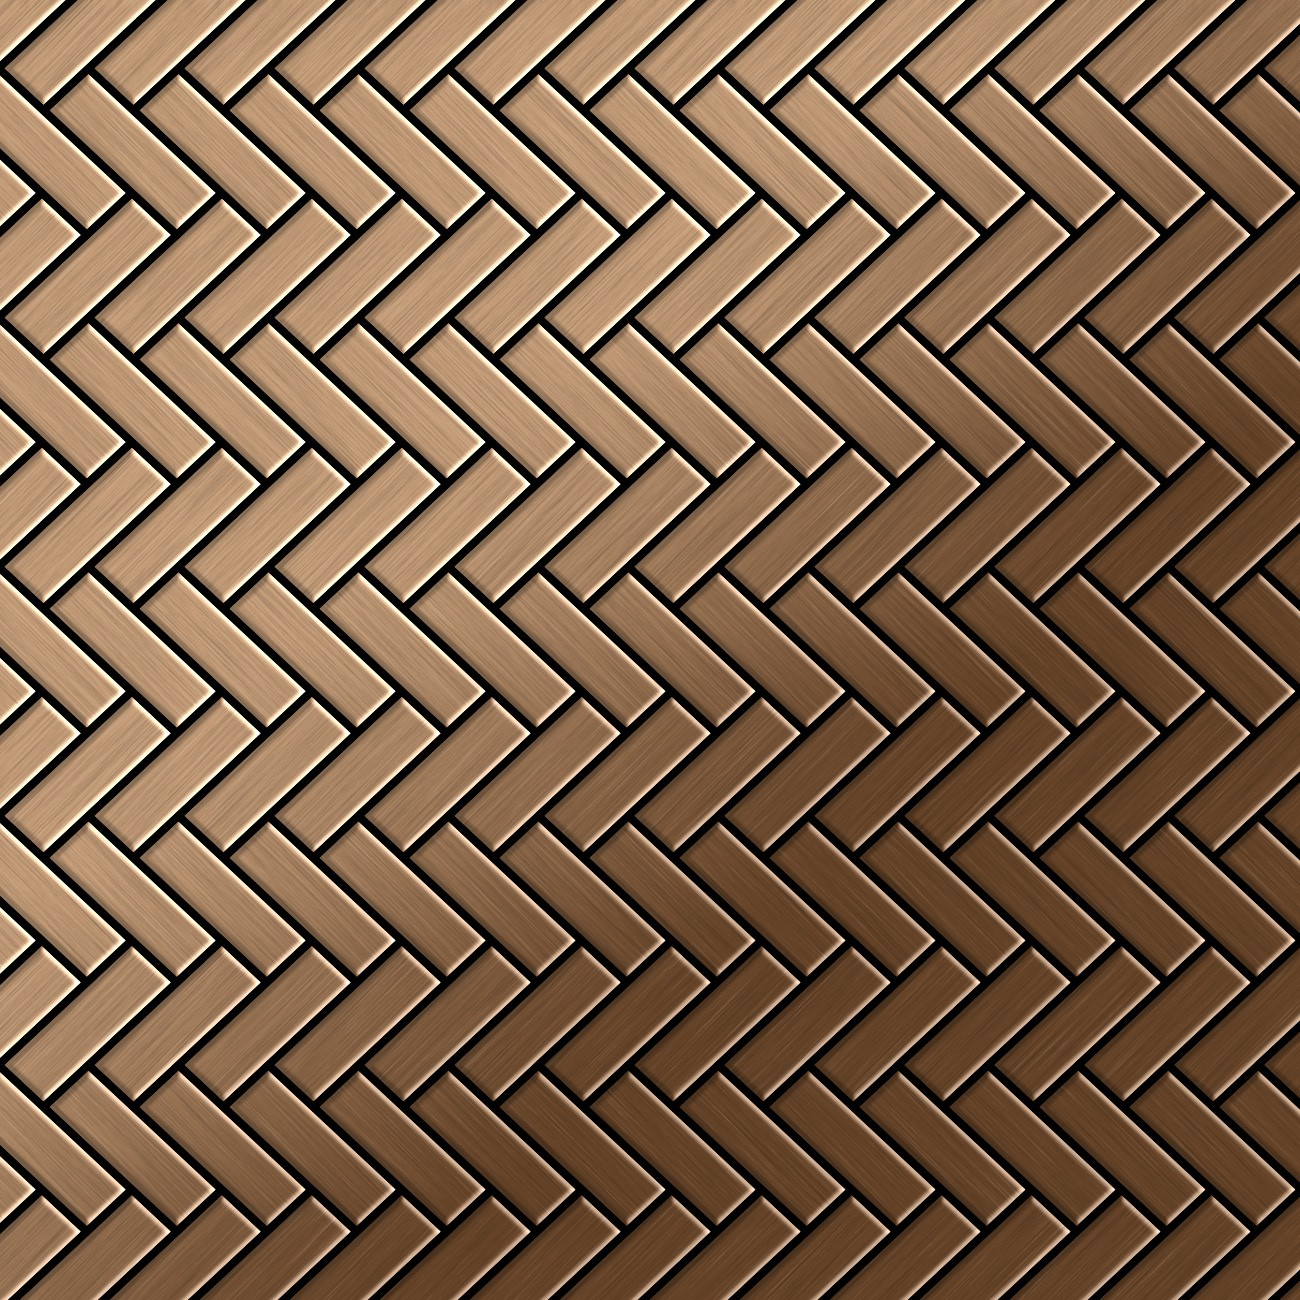 mosaik fliese massiv metall titan geb rstet kupfer 1 6mm herringbone ti ab ebay. Black Bedroom Furniture Sets. Home Design Ideas